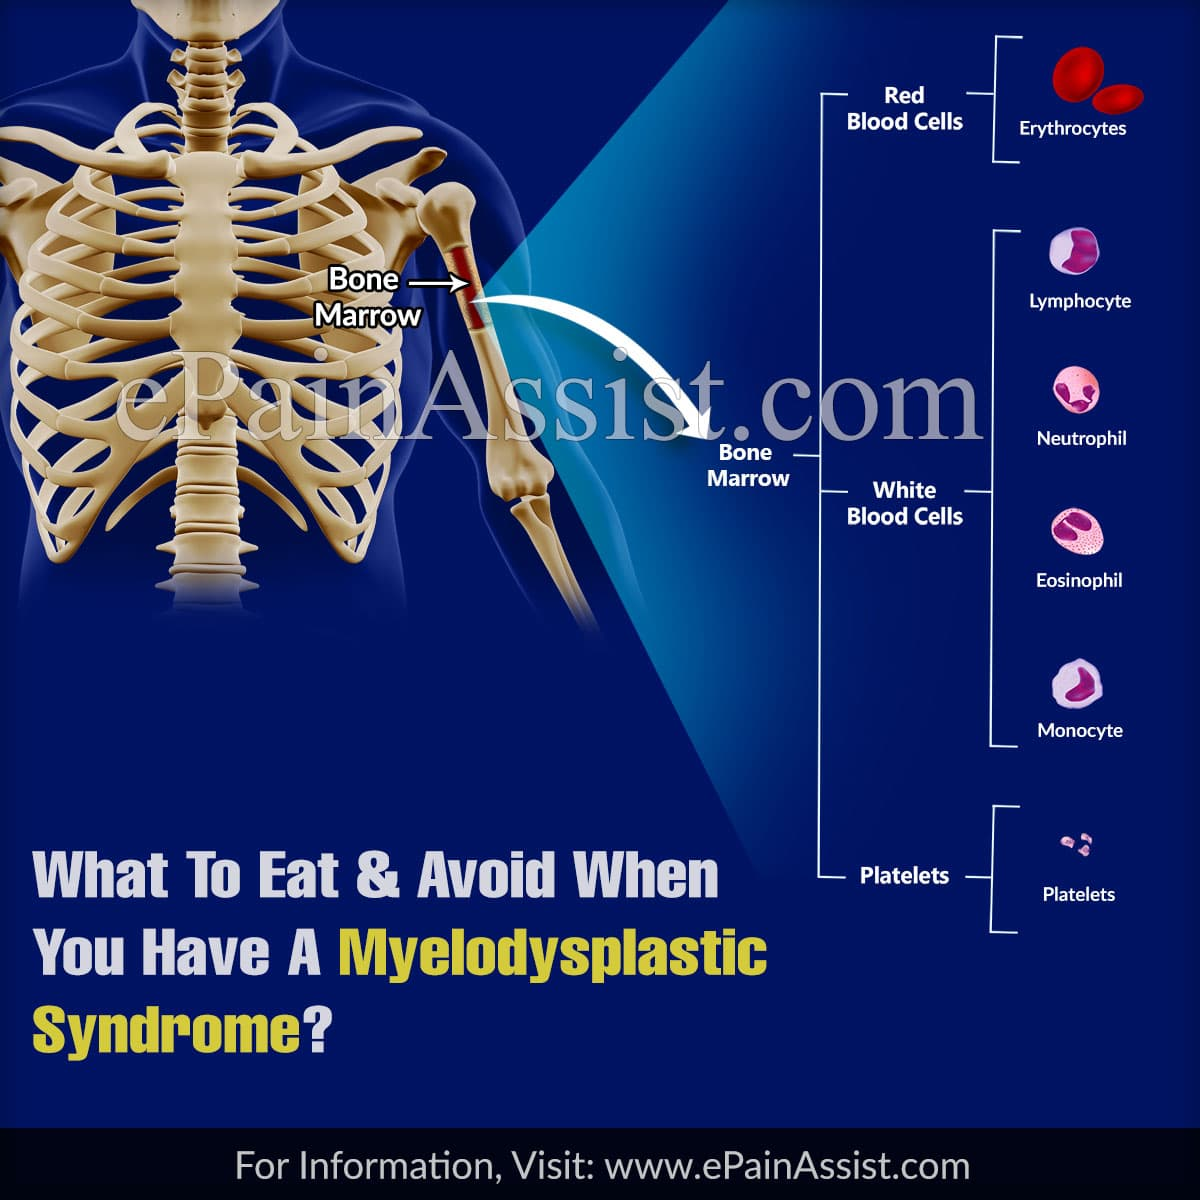 What To Eat & Avoid When You Have A Myelodysplastic Syndrome?